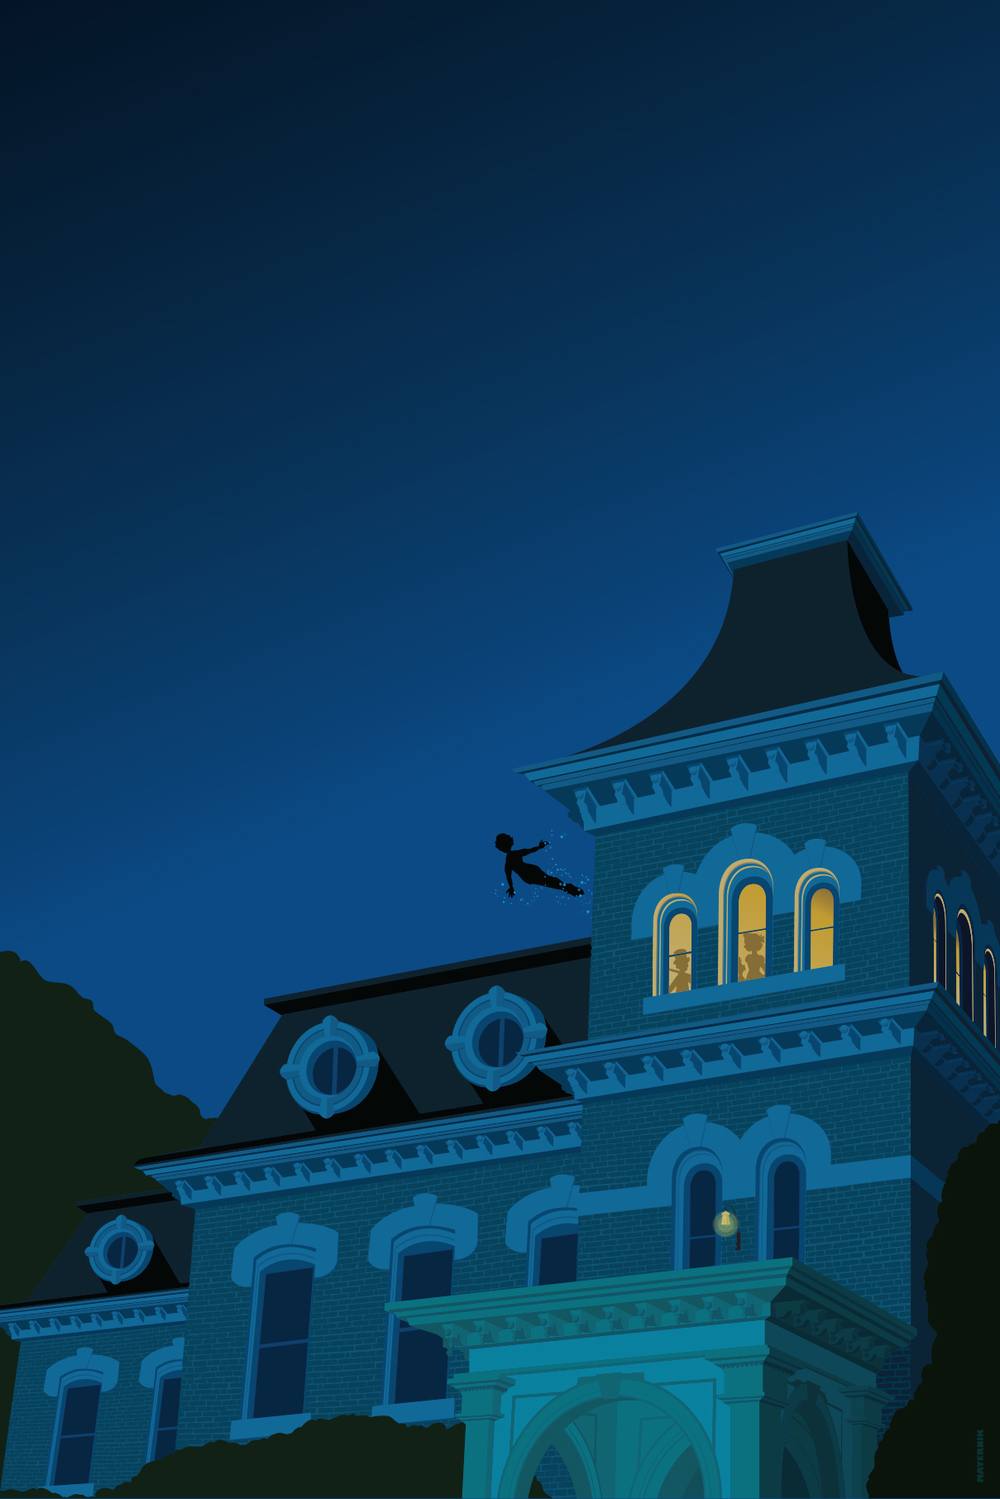 Peter Pan Illustration.jpg